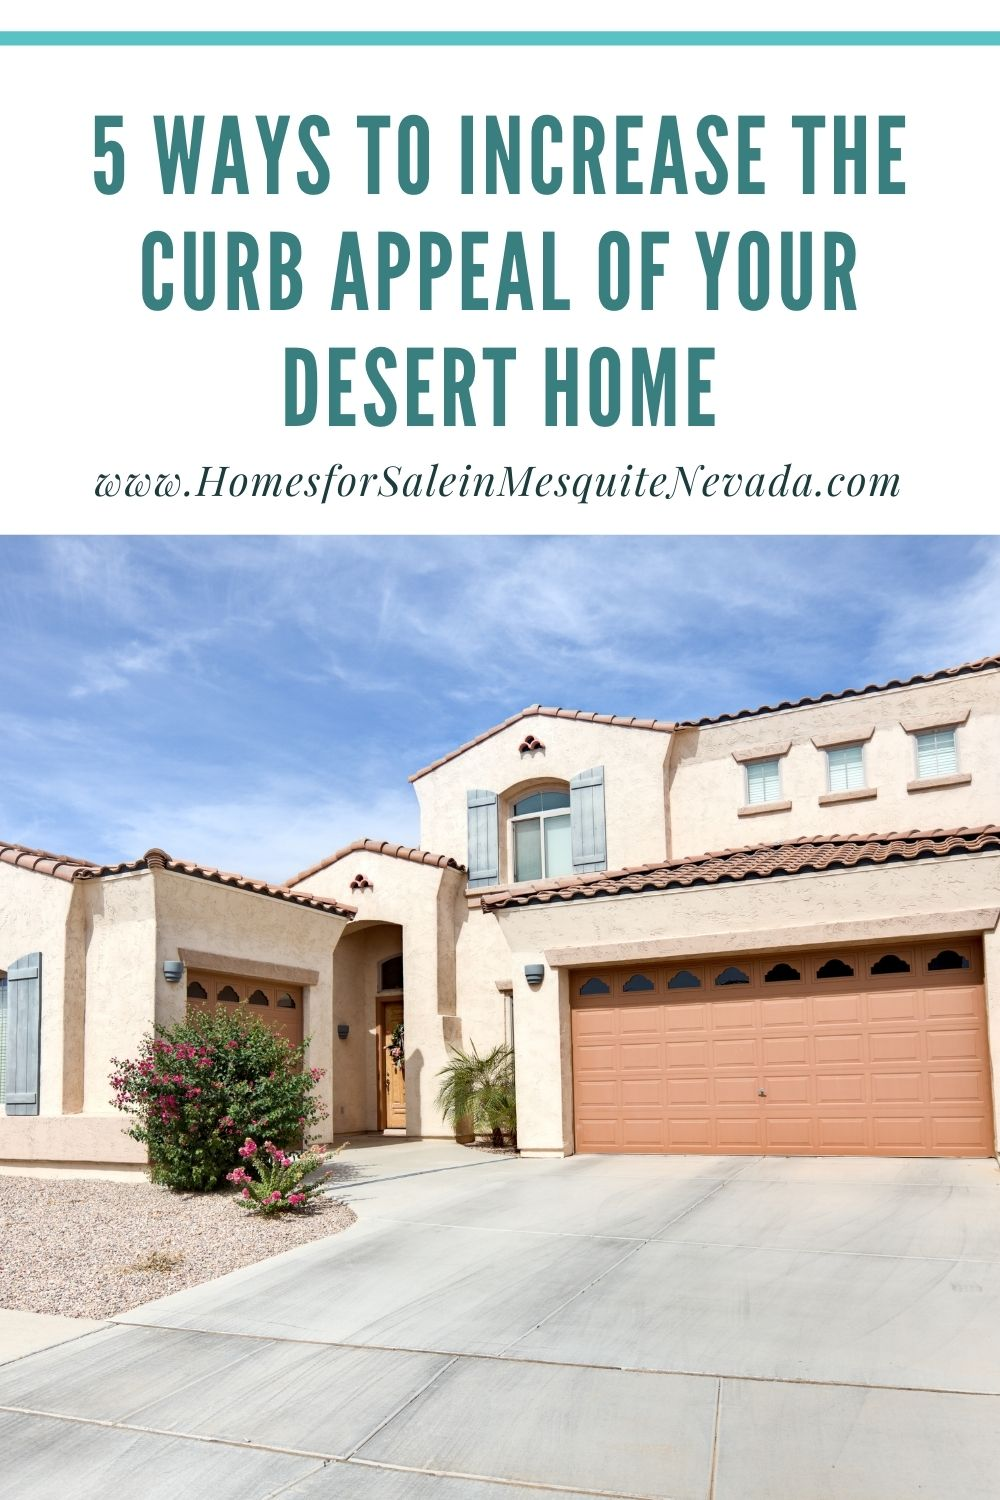 5 ways to increase the Curb Appeal of your Desert Home